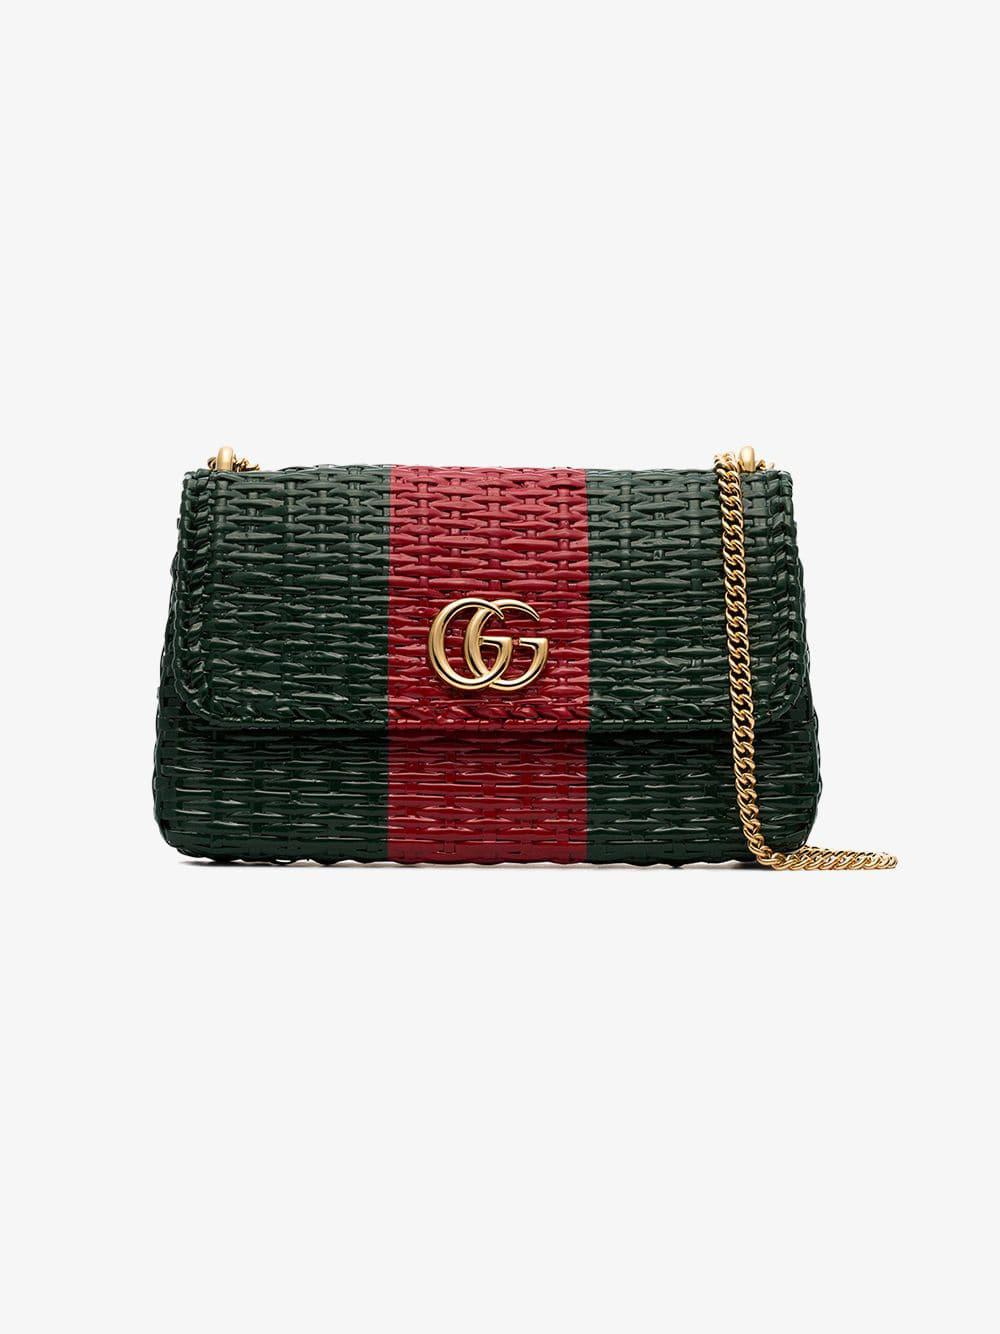 44c21cb38ad Lyst - Gucci Green And Red Web Straw Small Shoulder Bag in Green